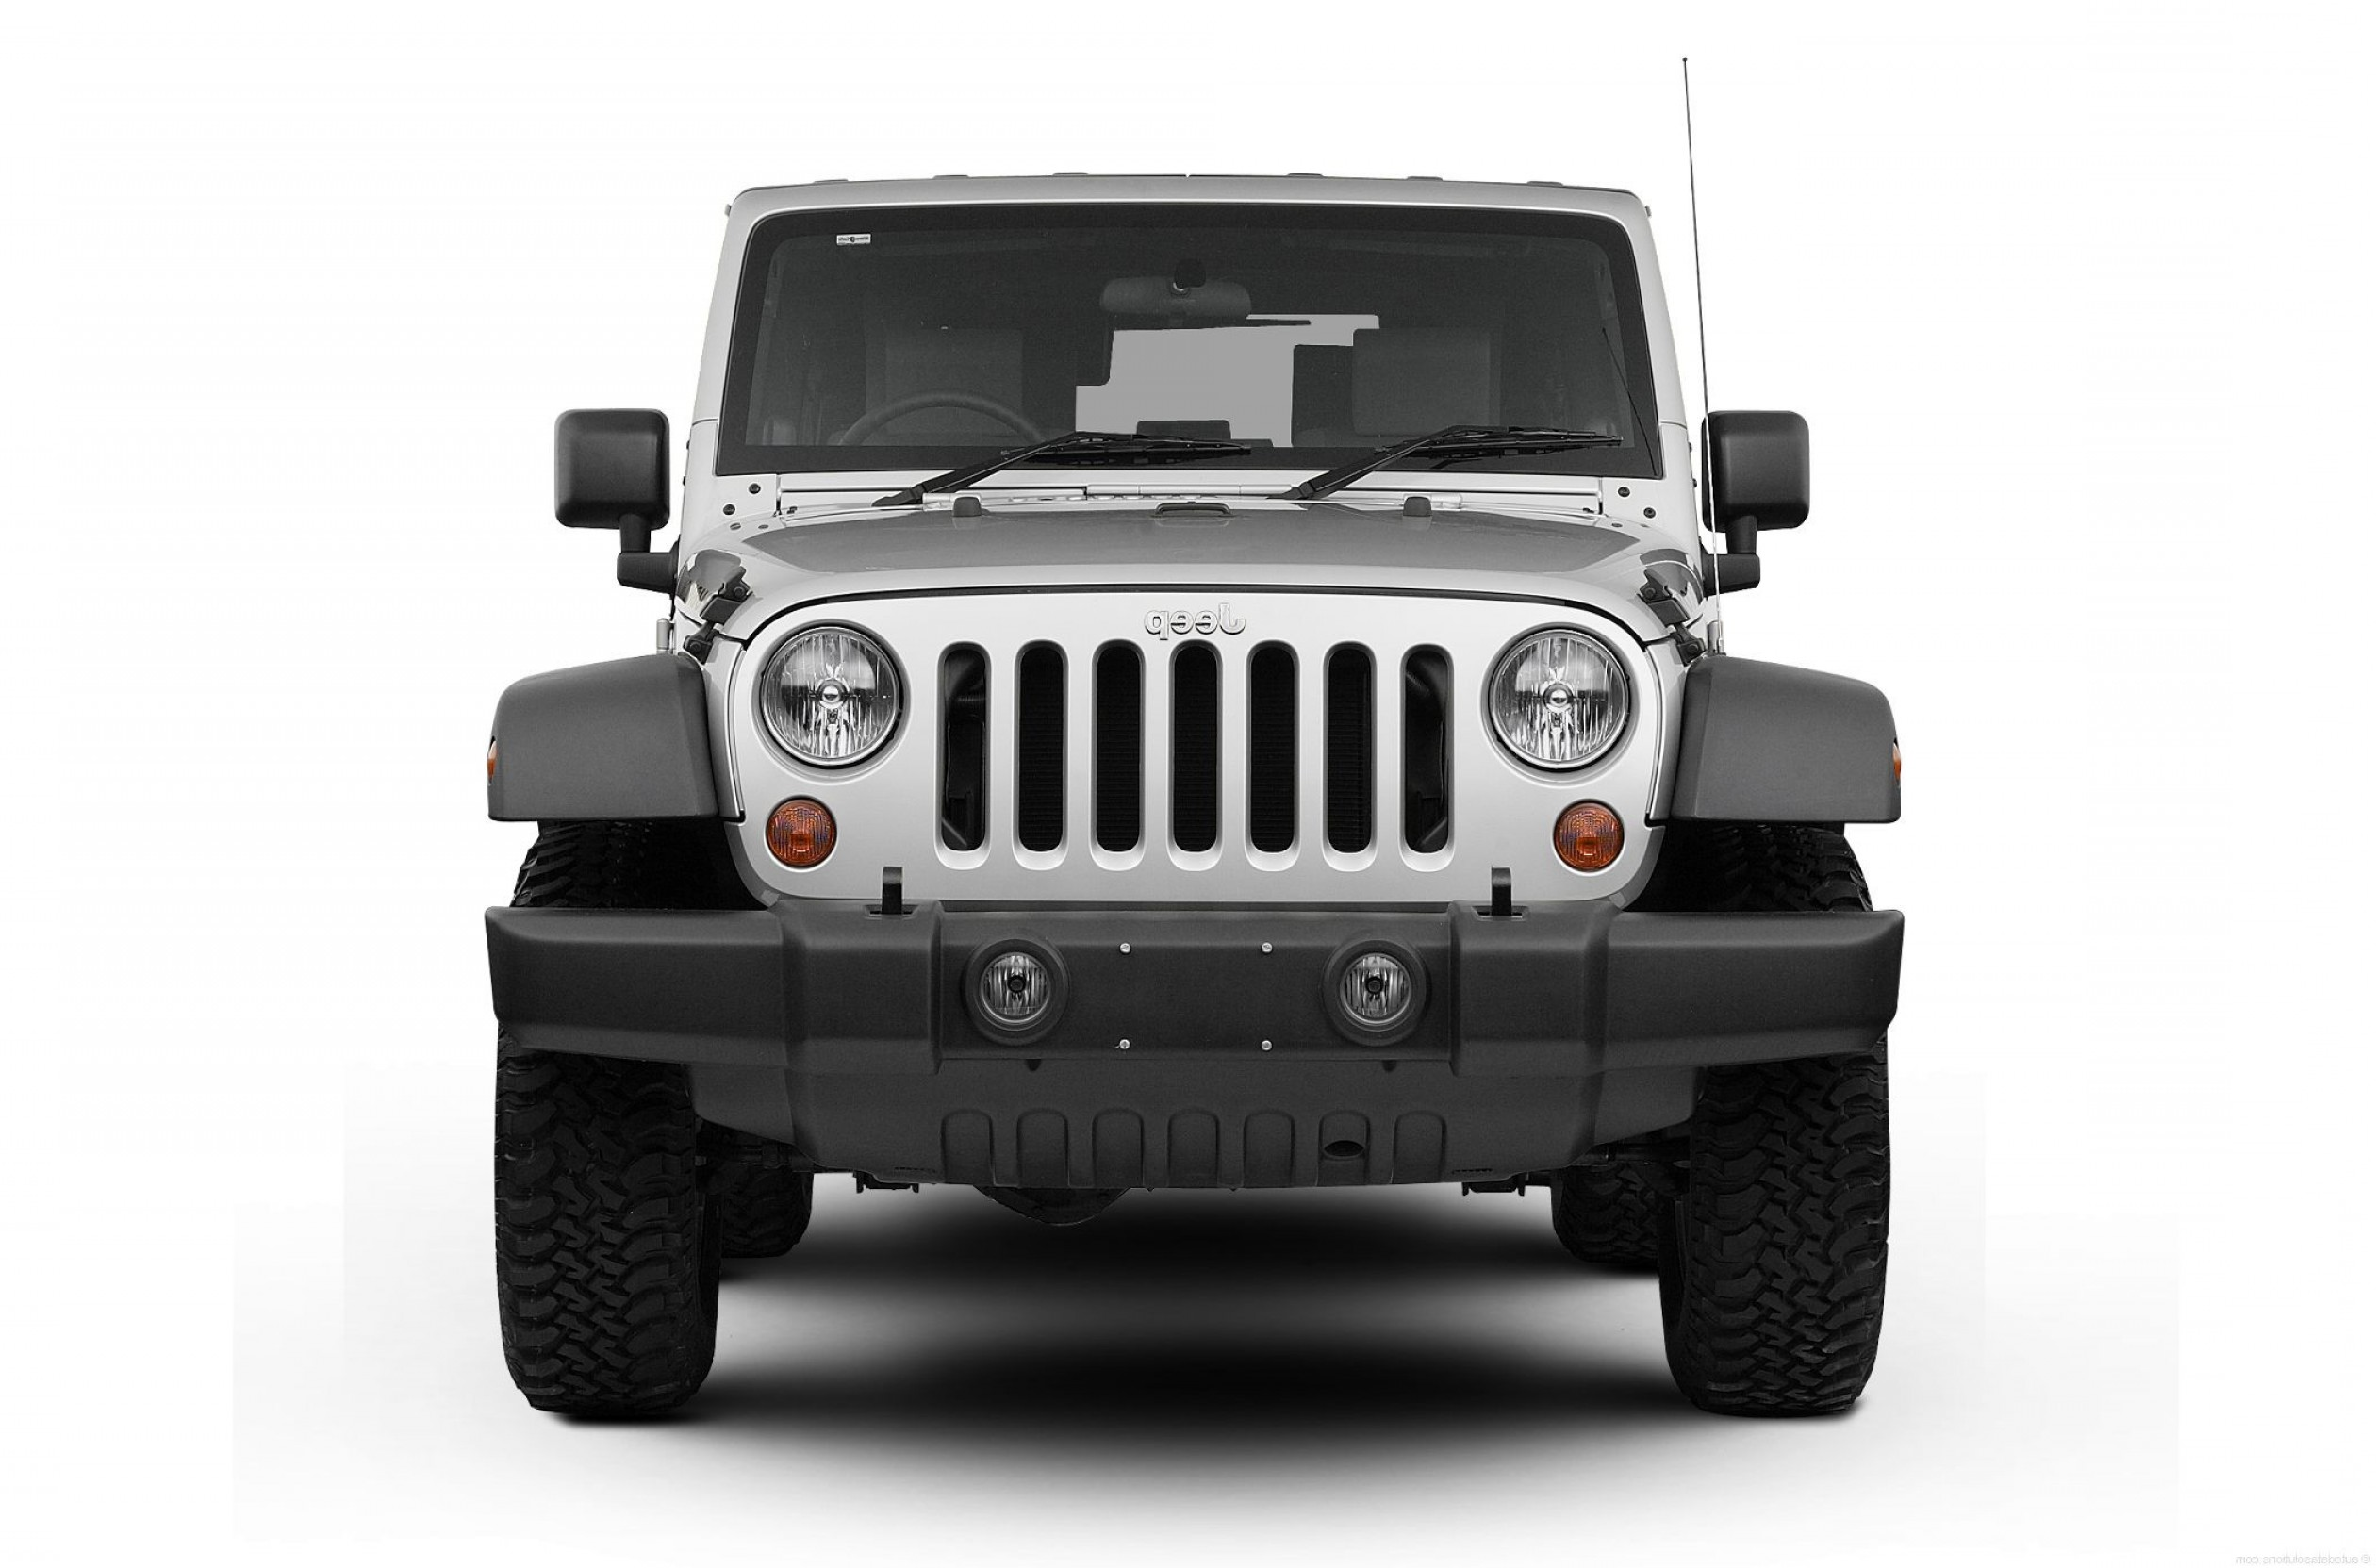 2014 Jeep Wrangler Vector: Jeep Wrangler Grille And Front Ende Auto View J End U